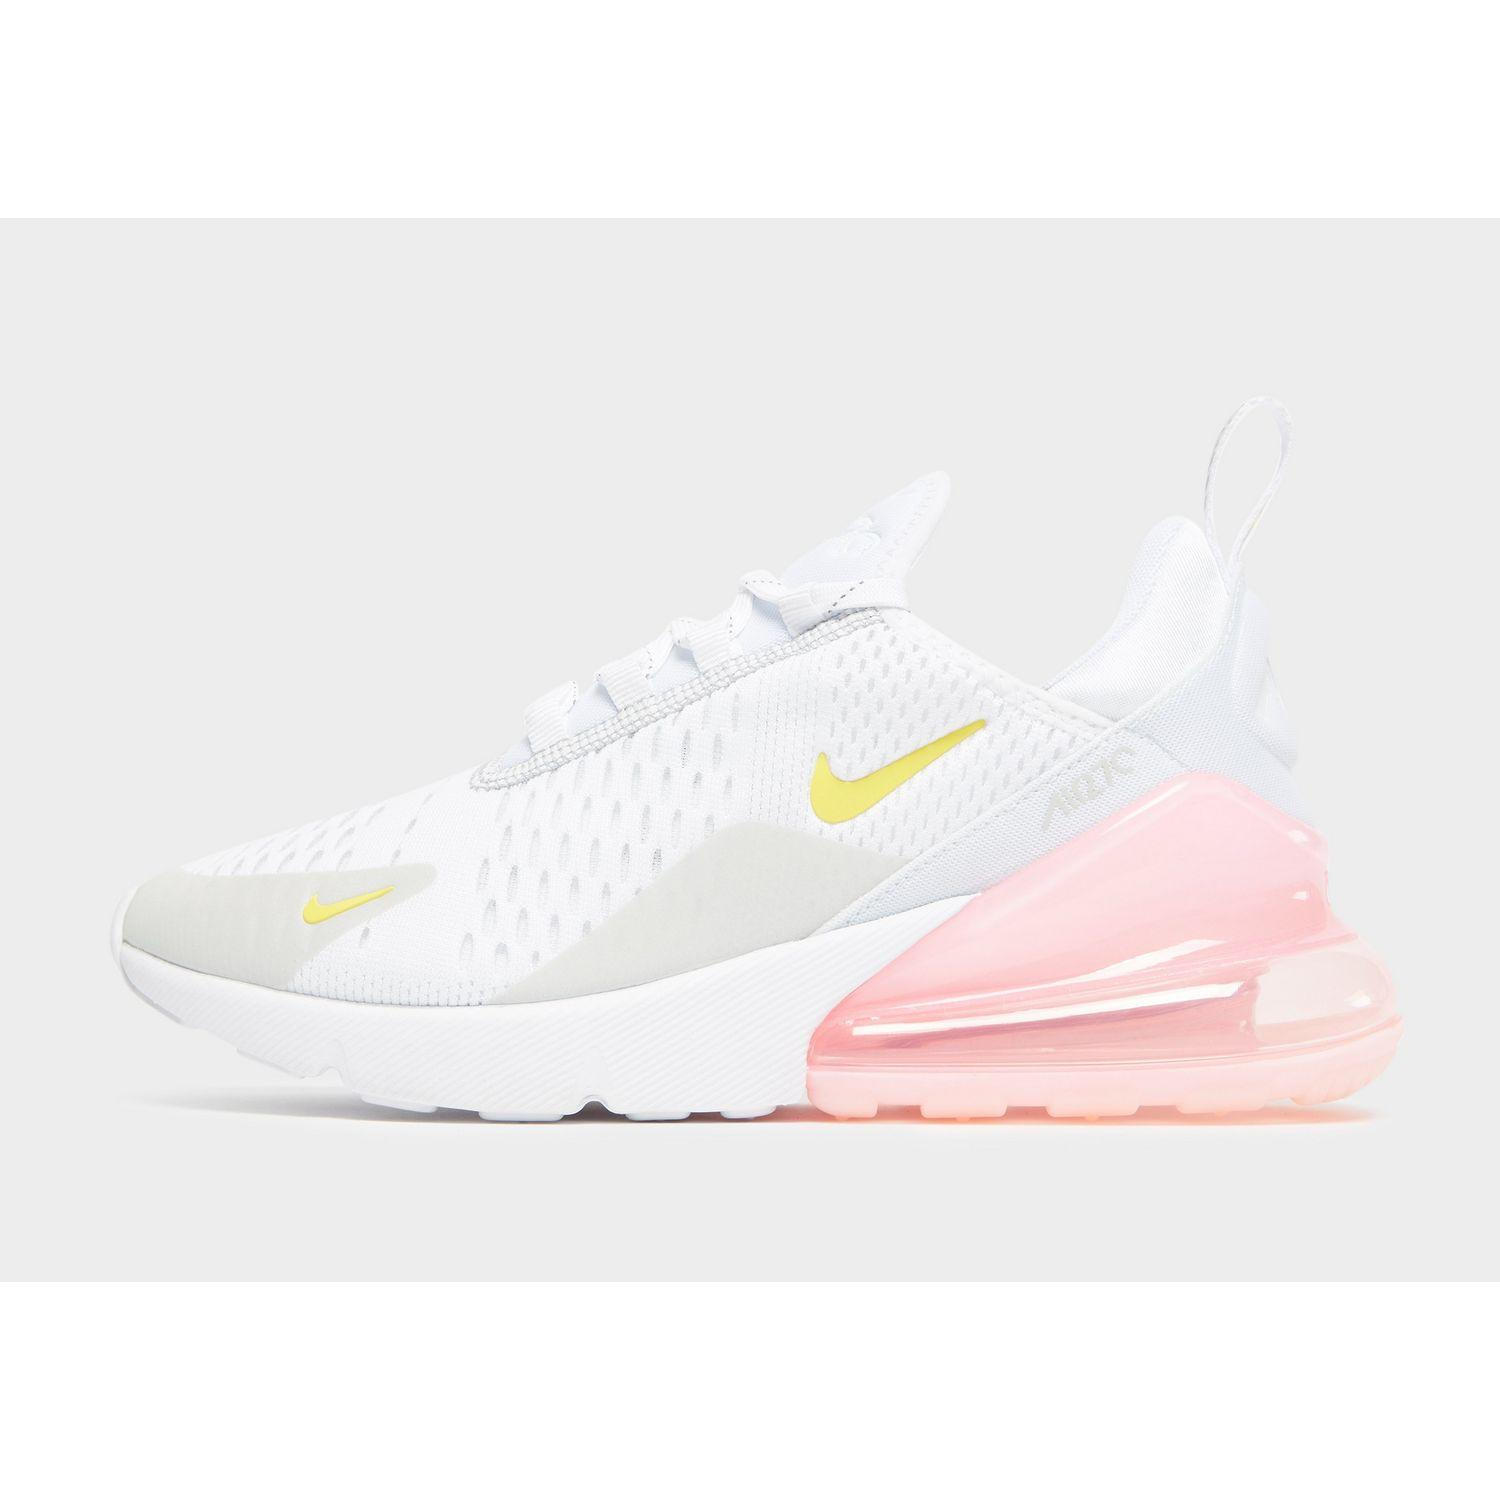 Nike Synthetic Air Max 270 In White Pink Yellow White Lyst